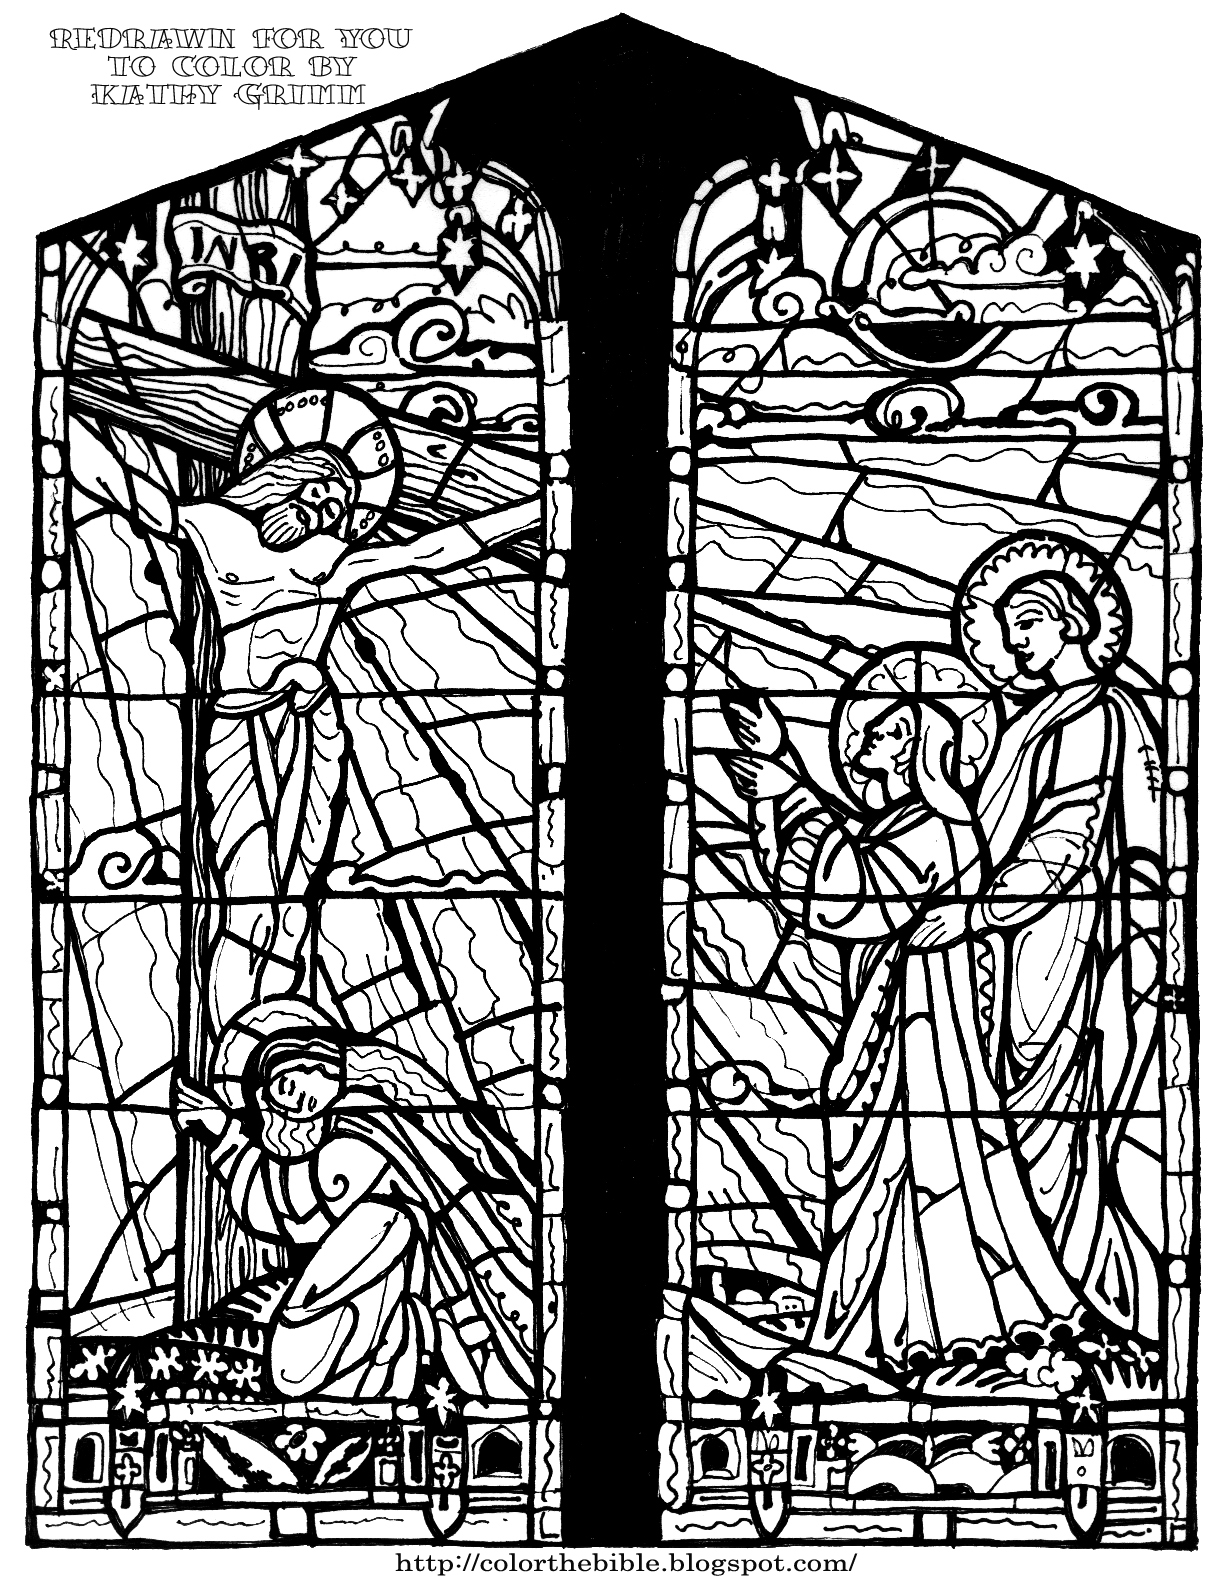 stained glass coloring page stained glass bible kids coloring activity kids answers glass coloring stained page